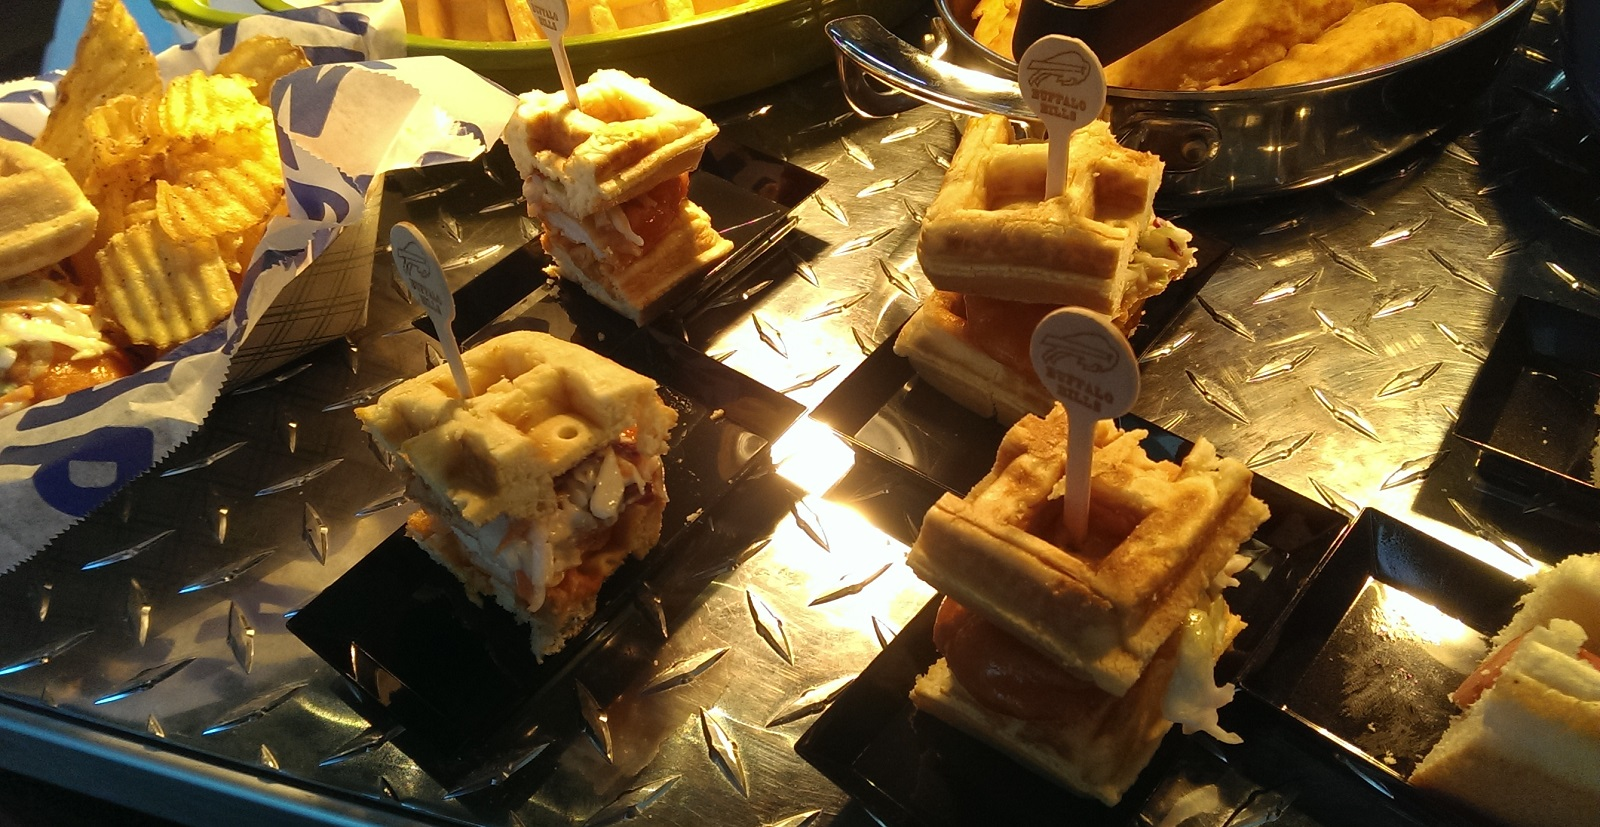 Sample-sized portions of Jerry Hughes' chicken-and-waffle-the-Quarterback sandwich, new to Bills concessions this fall. (Ryan Nagelhout/Special to The News)